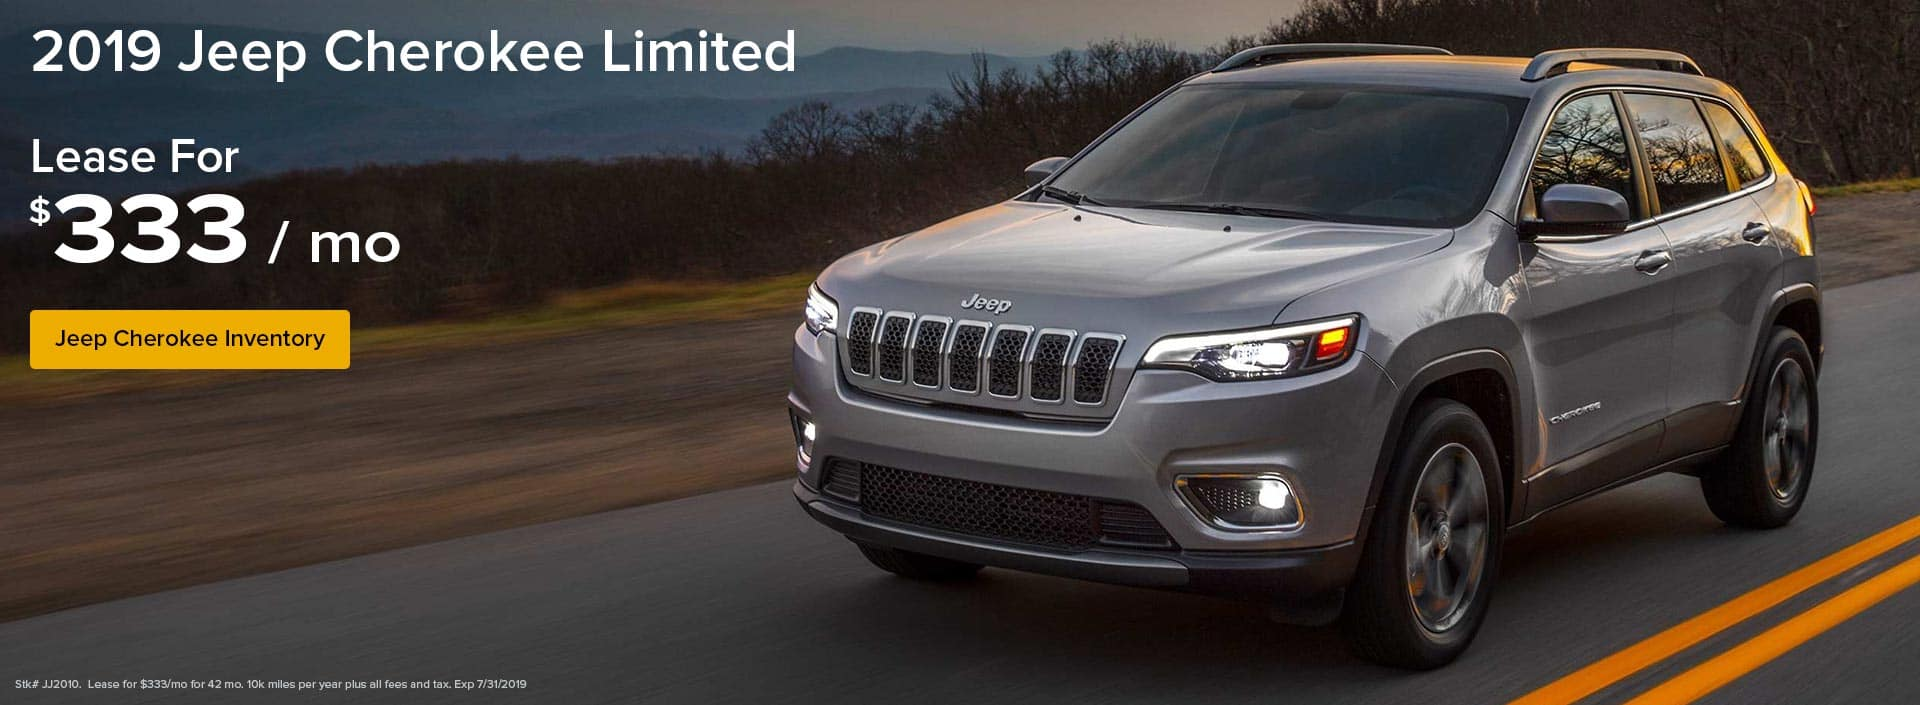 Lease a Jeep Cherokee Limited